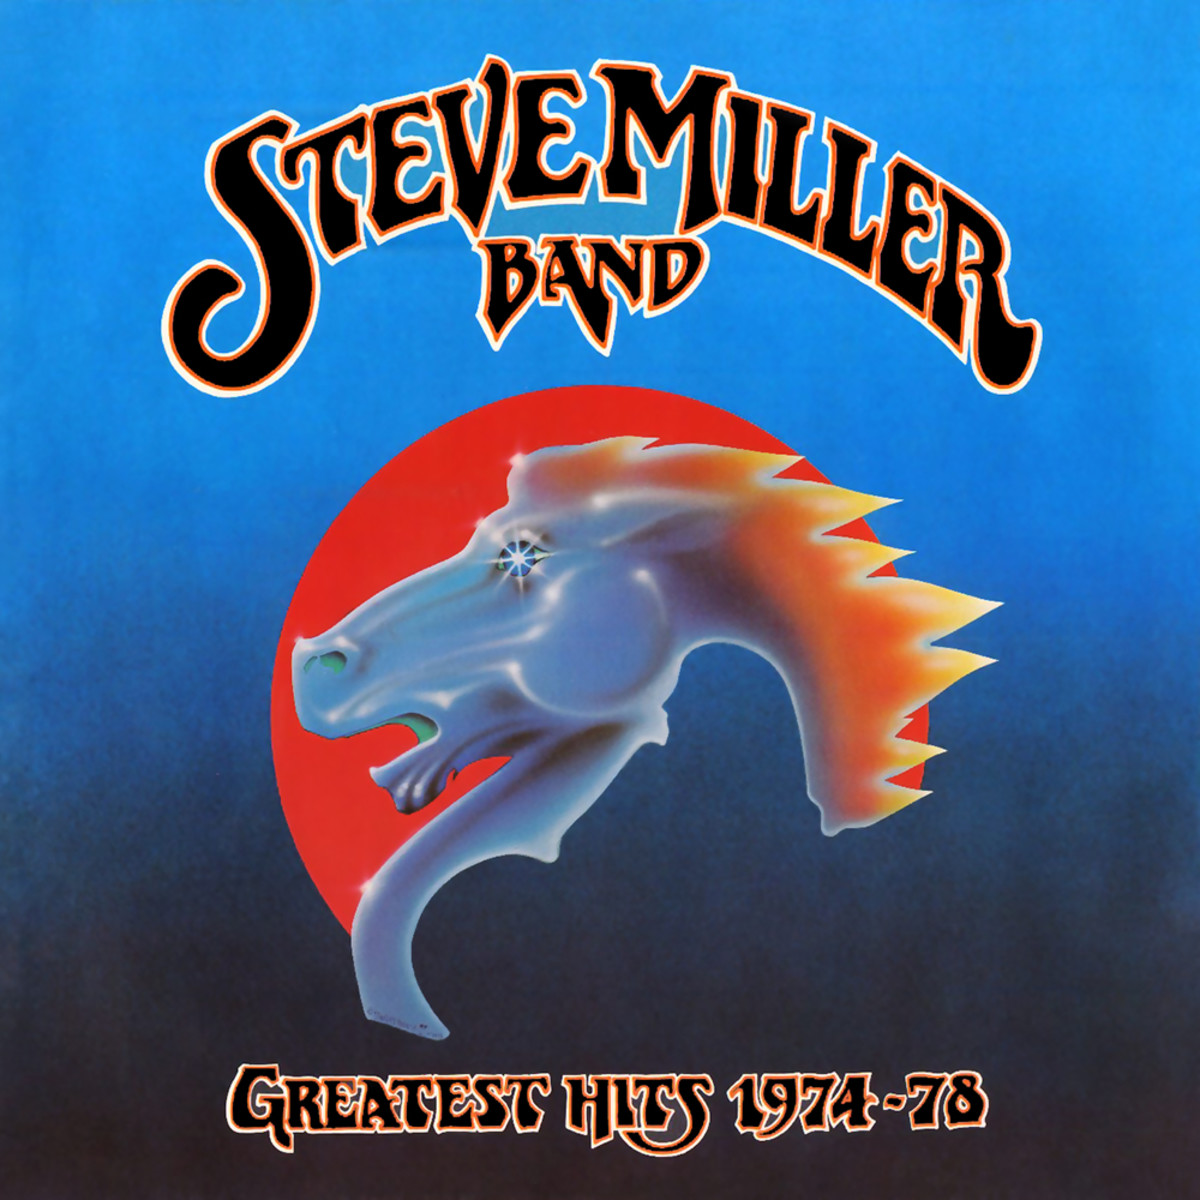 "Steve Miller Band ""Greatest Hits 1974-78"" Capitol Records R 133199 12"" LP Vinyl Record US Pressing (1978)  Album Cover Art by Alton Kelley & Stanley Mouse"